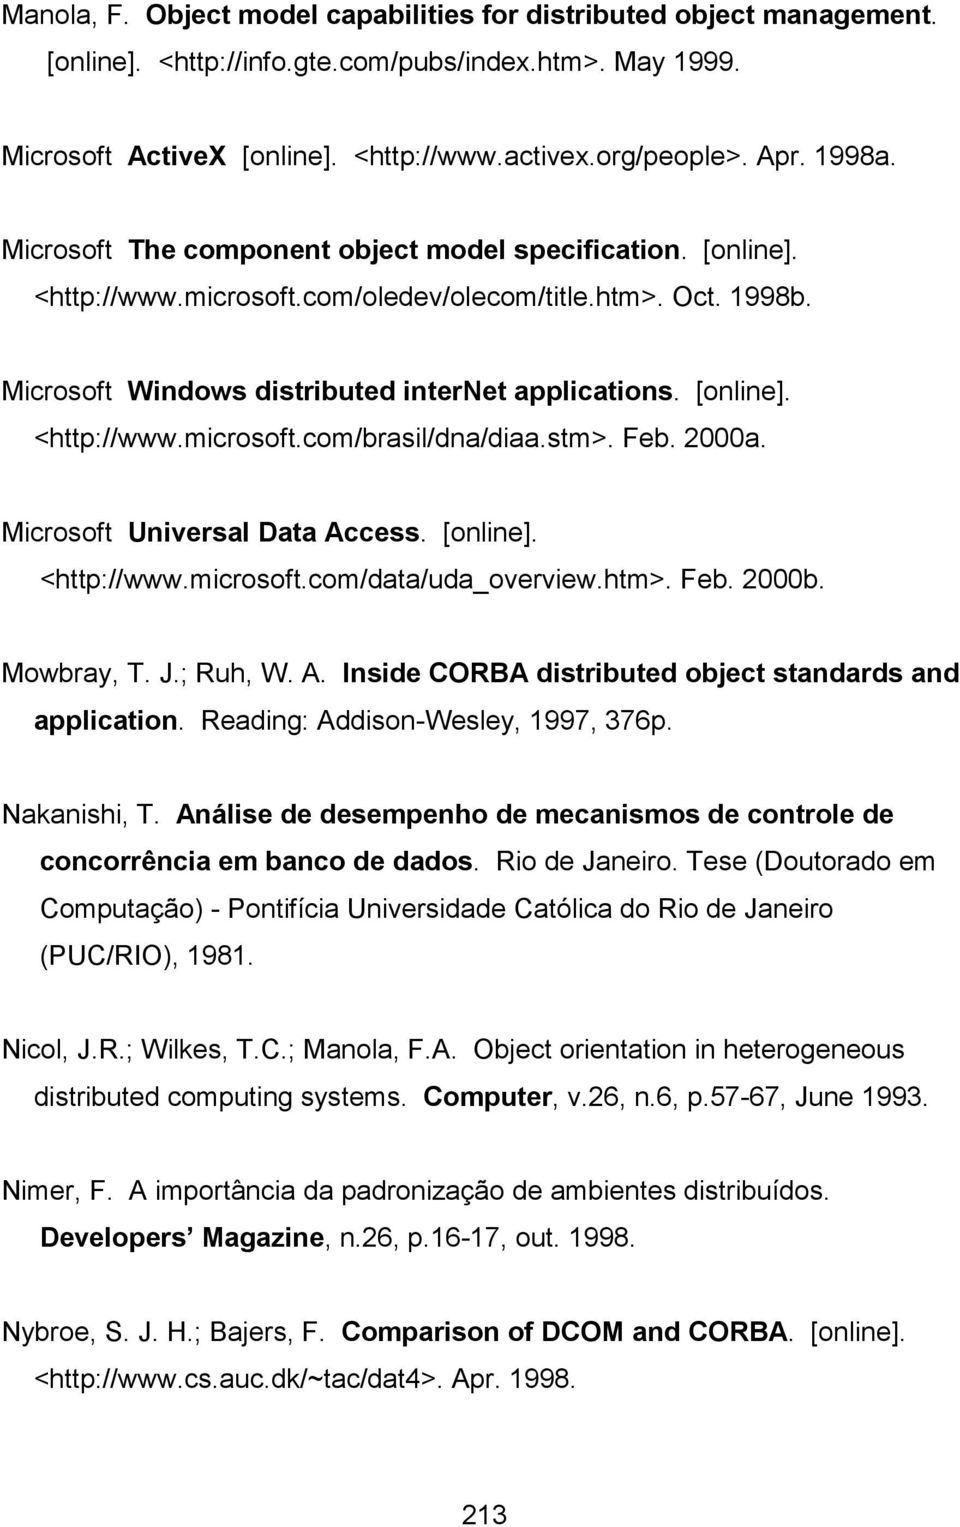 stm>. Feb. 2000a. Microsoft Universal Data Access. [online]. <http://www.microsoft.com/data/uda_overview.htm>. Feb. 2000b. Mowbray, T. J.; Ruh, W. A. Inside CORBA distributed object standards and application.